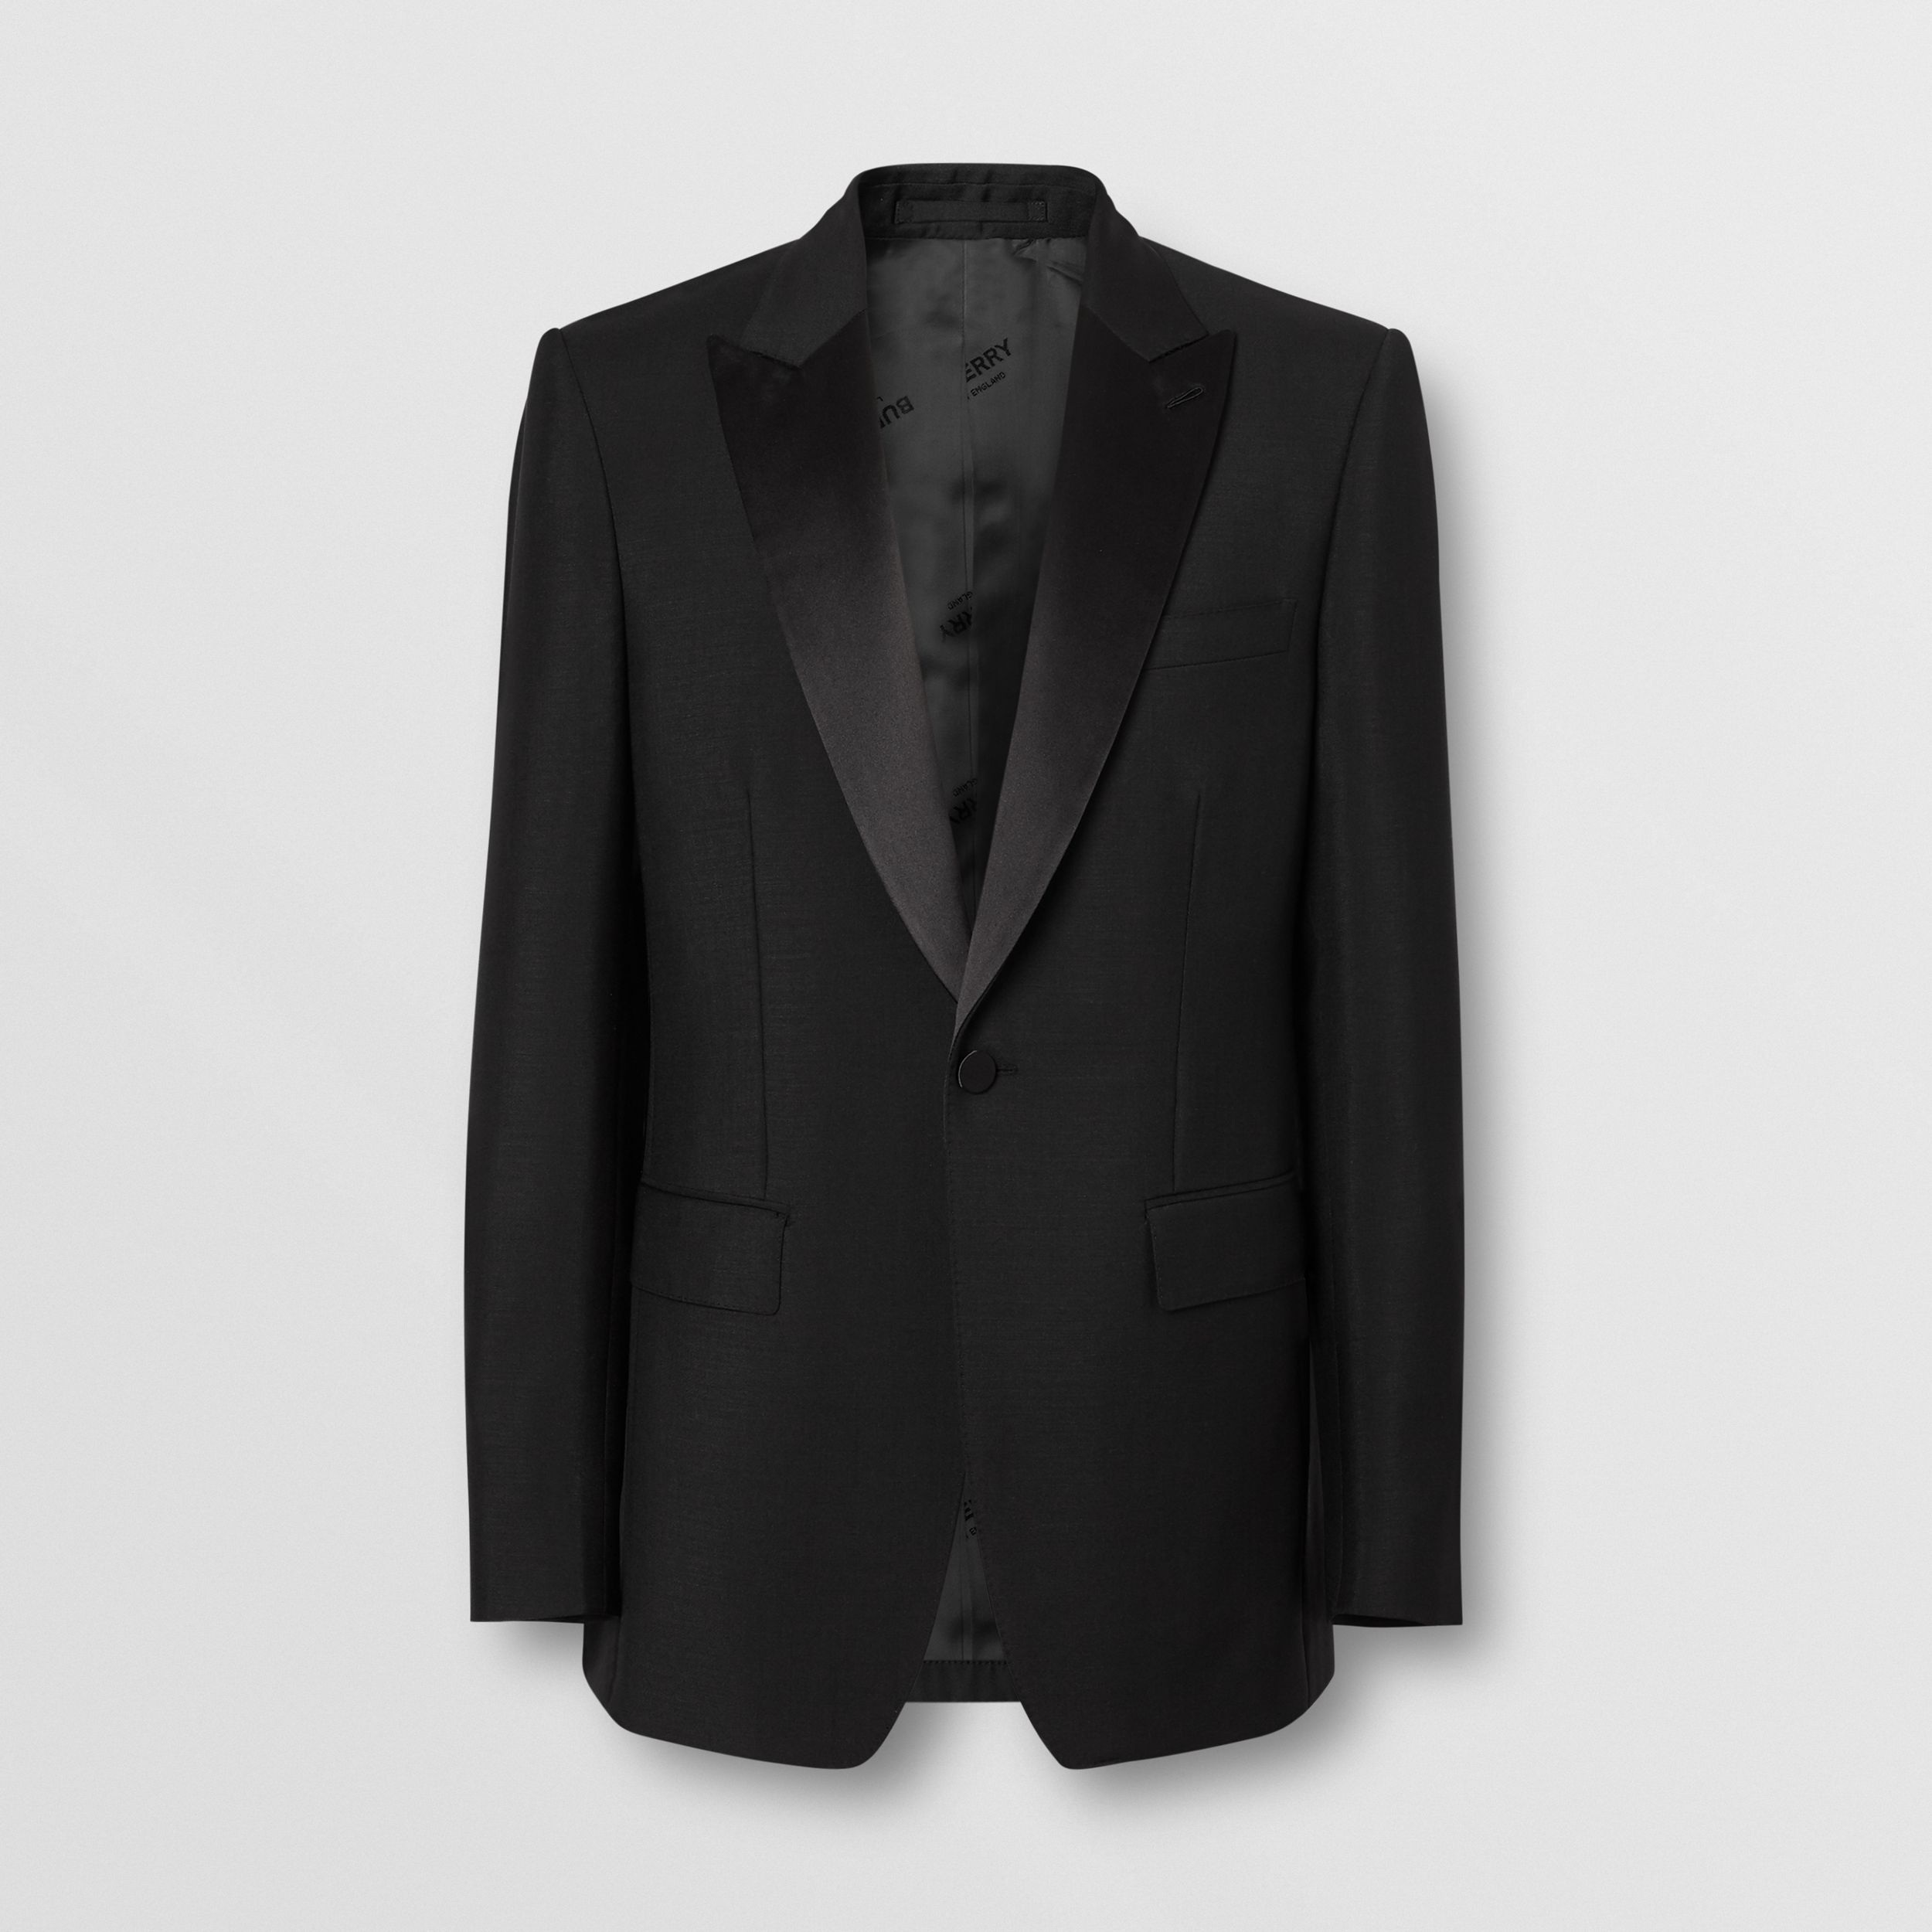 English Fit Mohair Wool Tuxedo in Black - Men | Burberry - 4